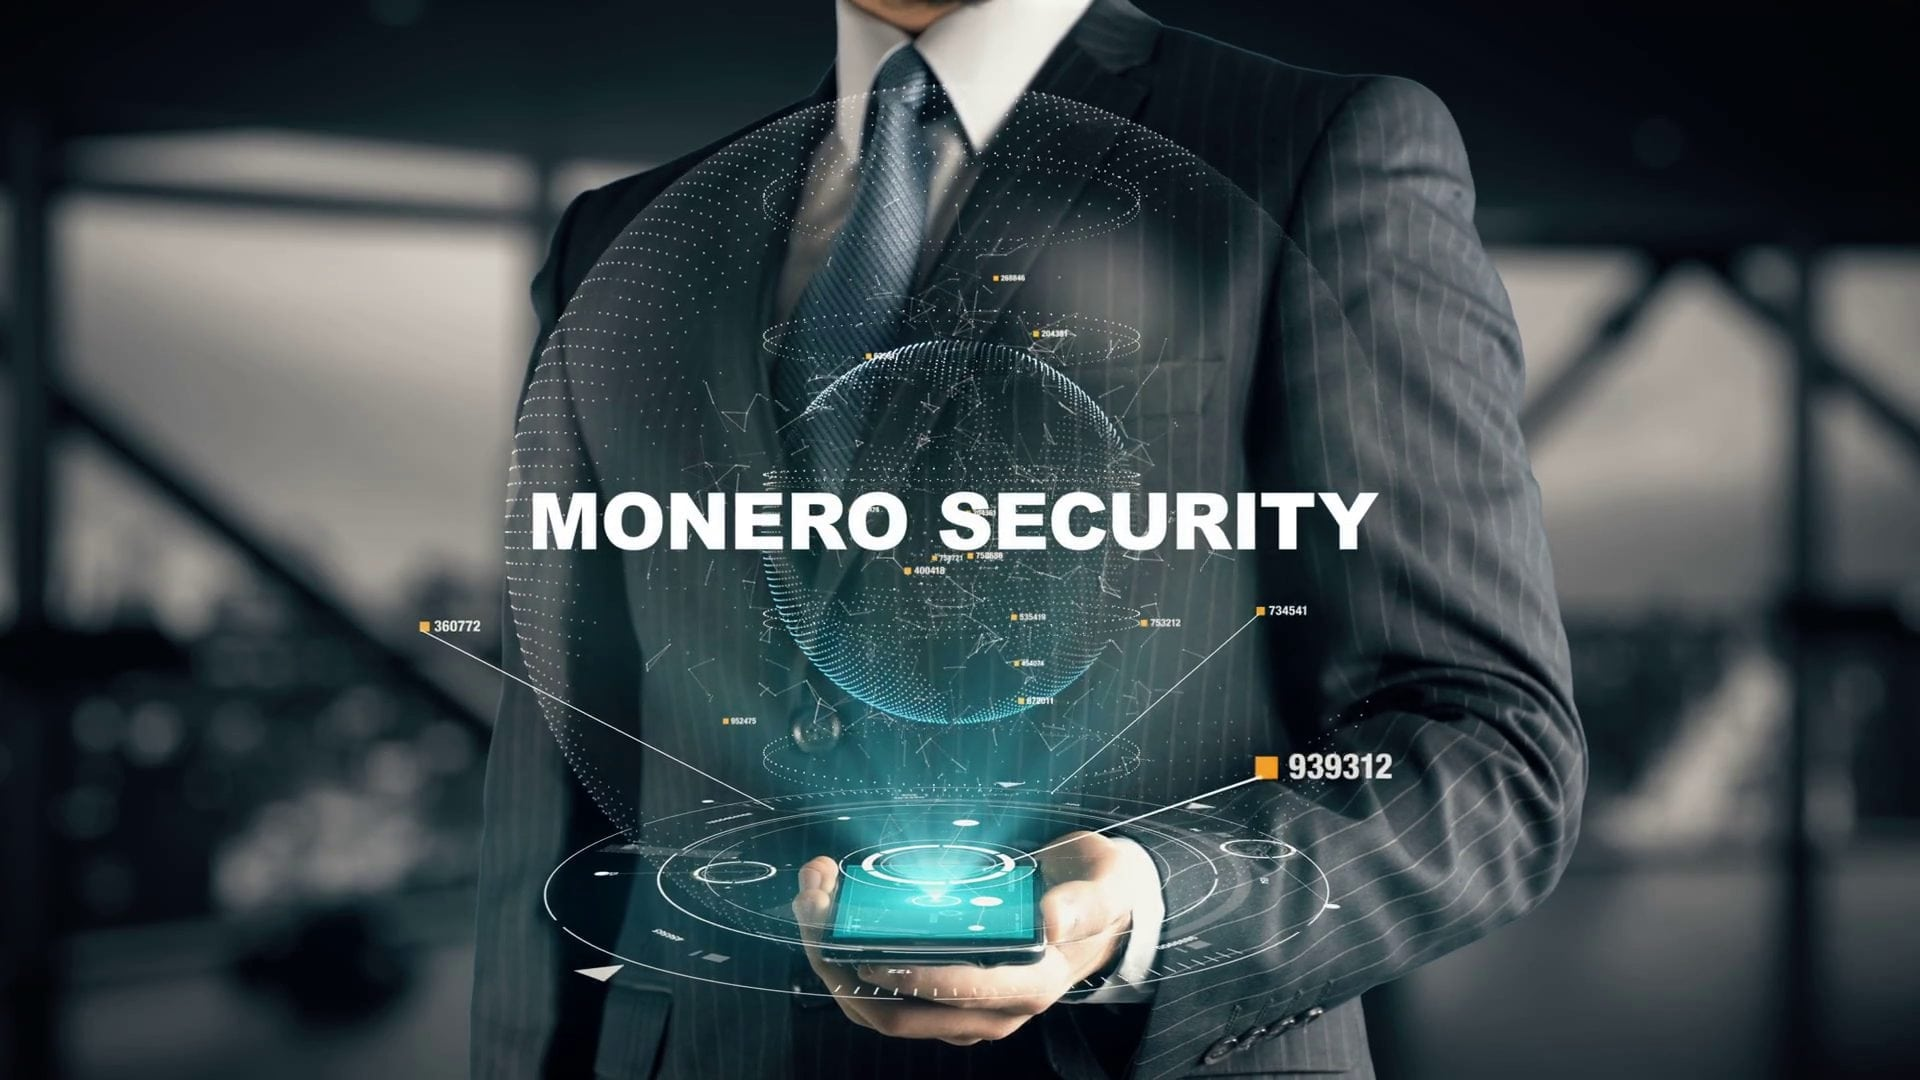 videoblocks businessman with monero security hologram concept helar1ybf thumbnail full14 2 - Monero (XMR) Privacy-Oriented Coin Increases By 12.23% Following The Optimistic Report From Satis Group